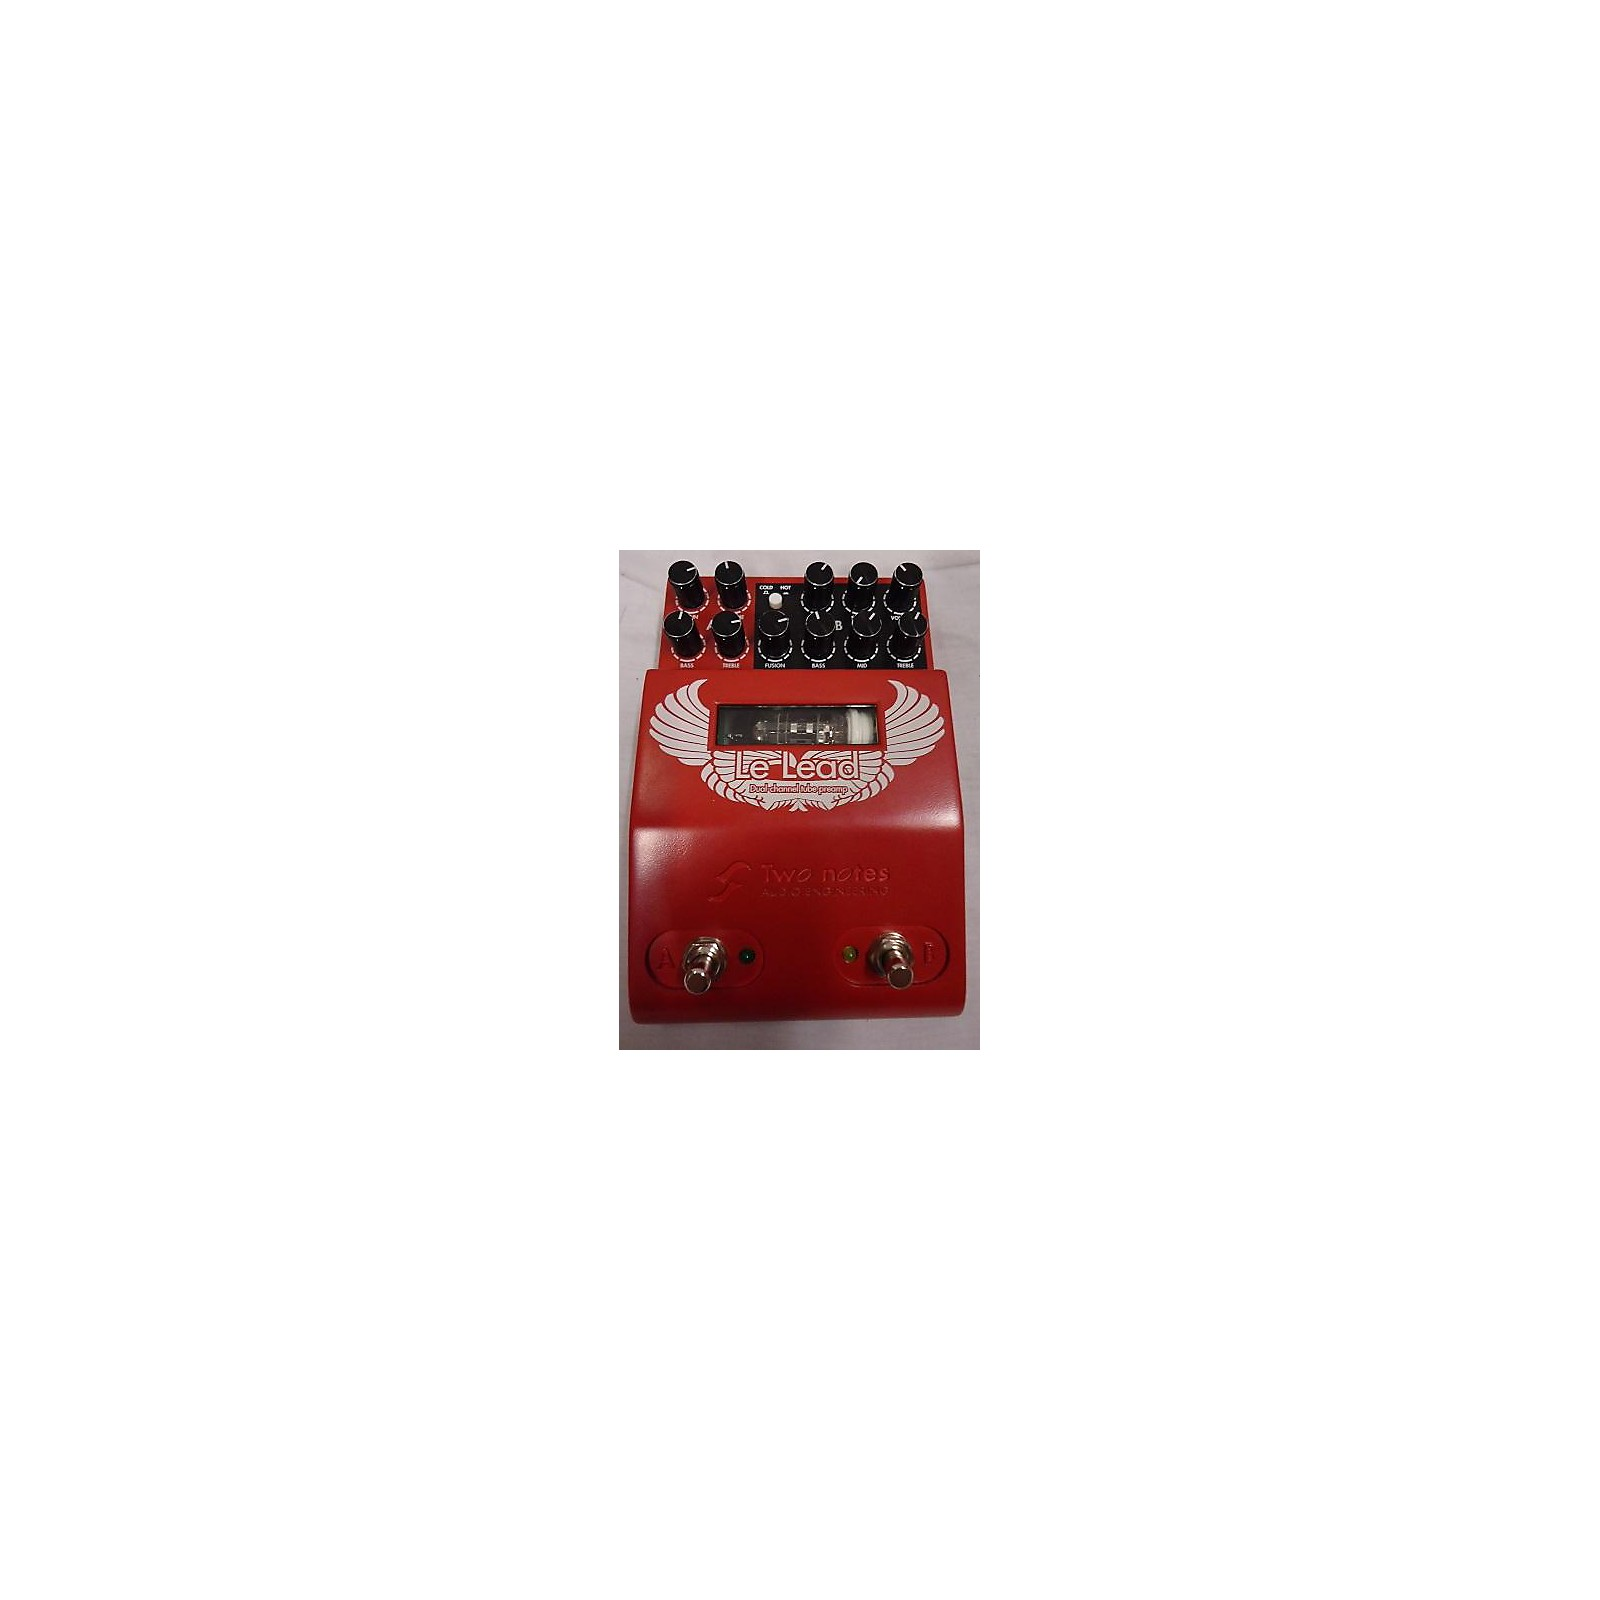 Two Notes Le Lead Dual Channel Tube Guitar Preamp